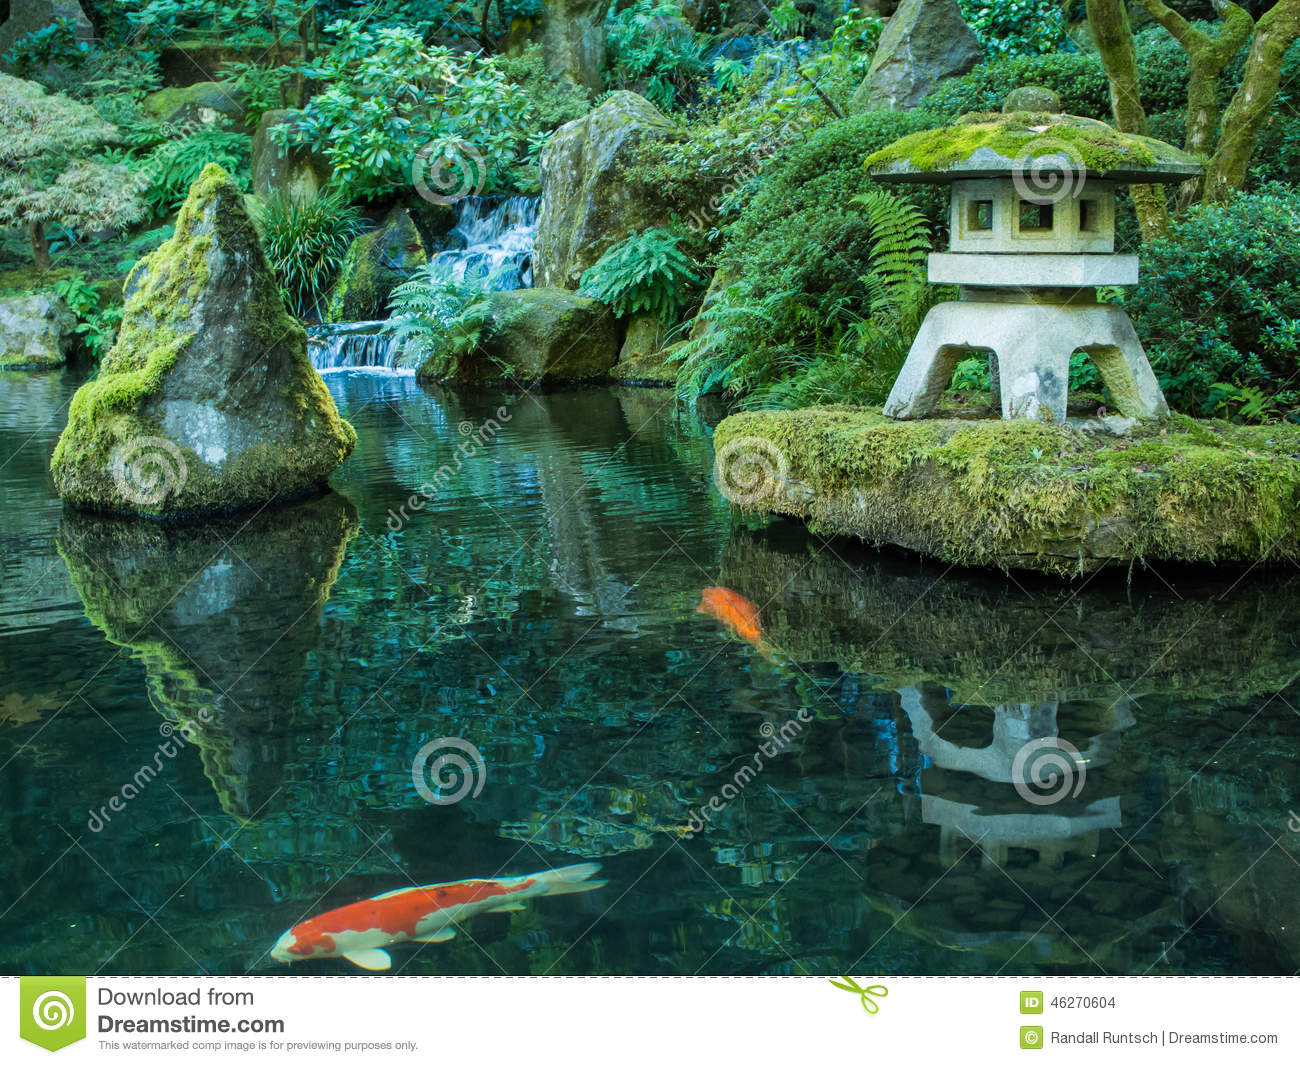 royalty free stock photo download a lantern and koi in the portland japanese garden